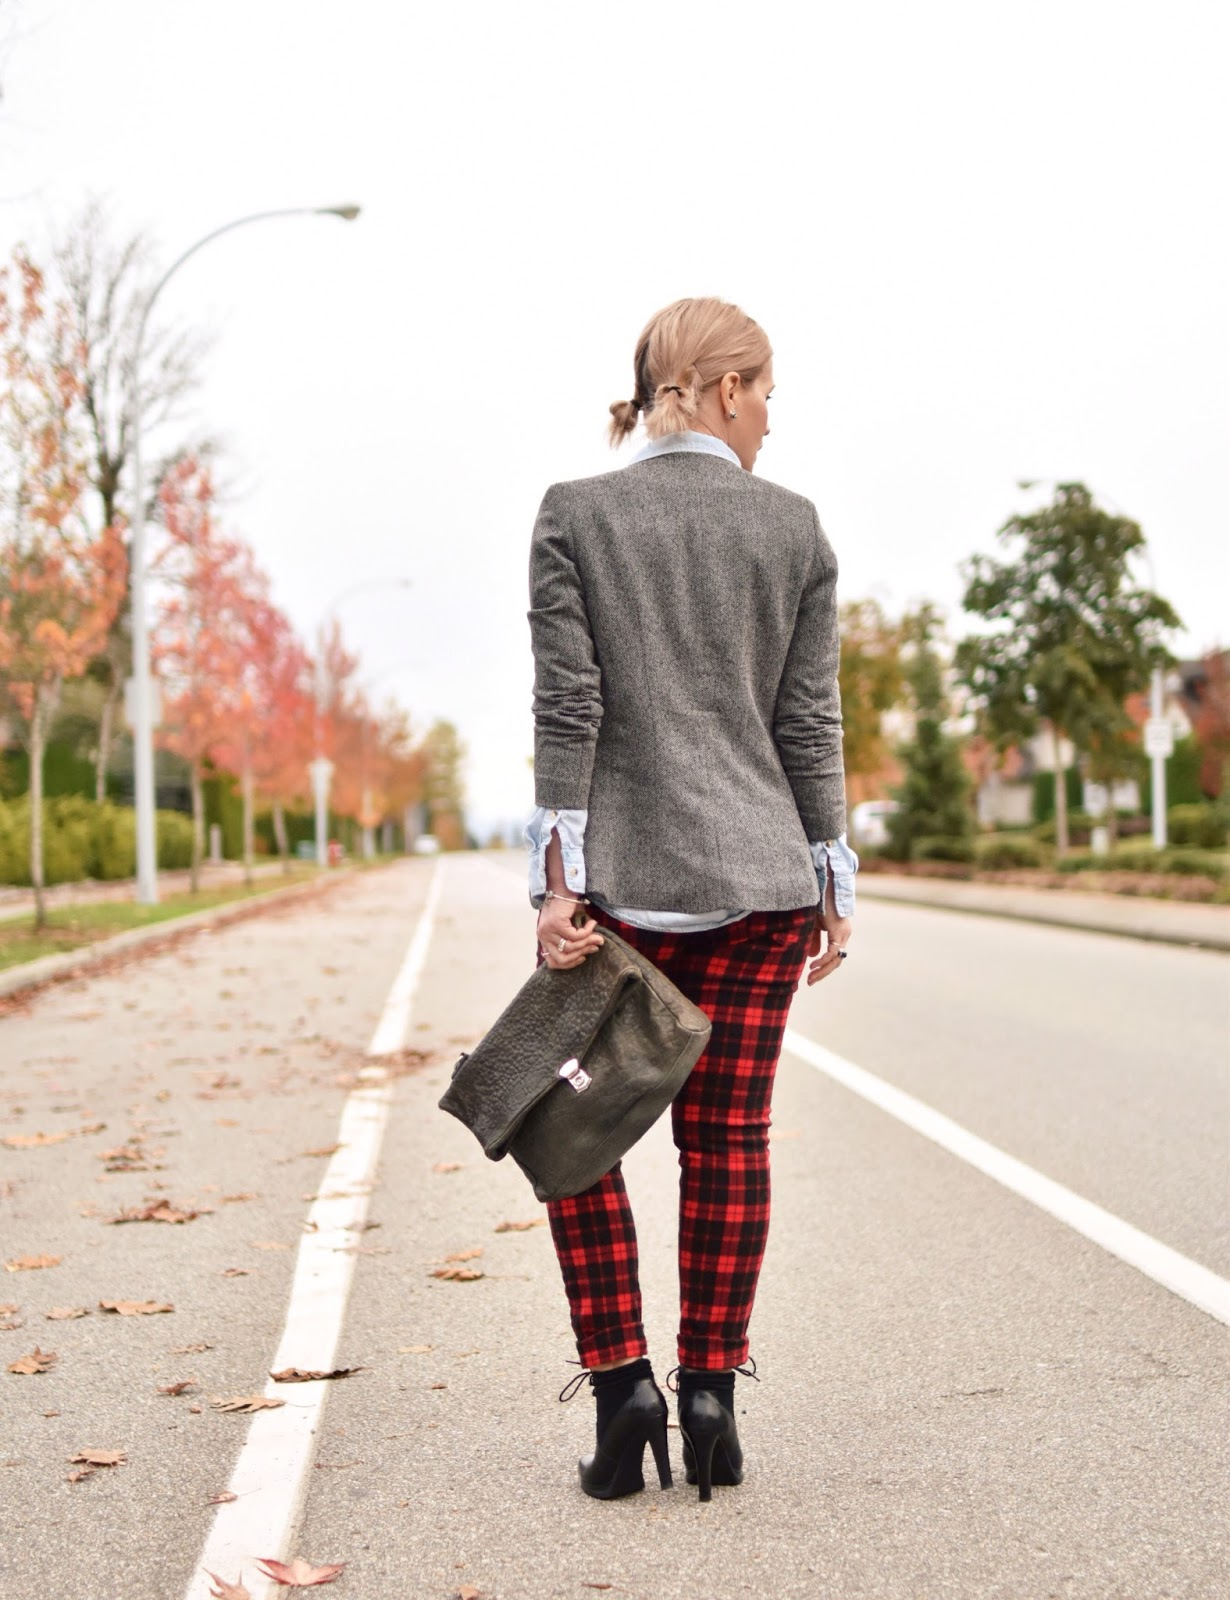 Outfit inspiration c/o Monika Faulkner - red plaid jeans, chambray shirt, shawl-collar blazer, and lace-up booties